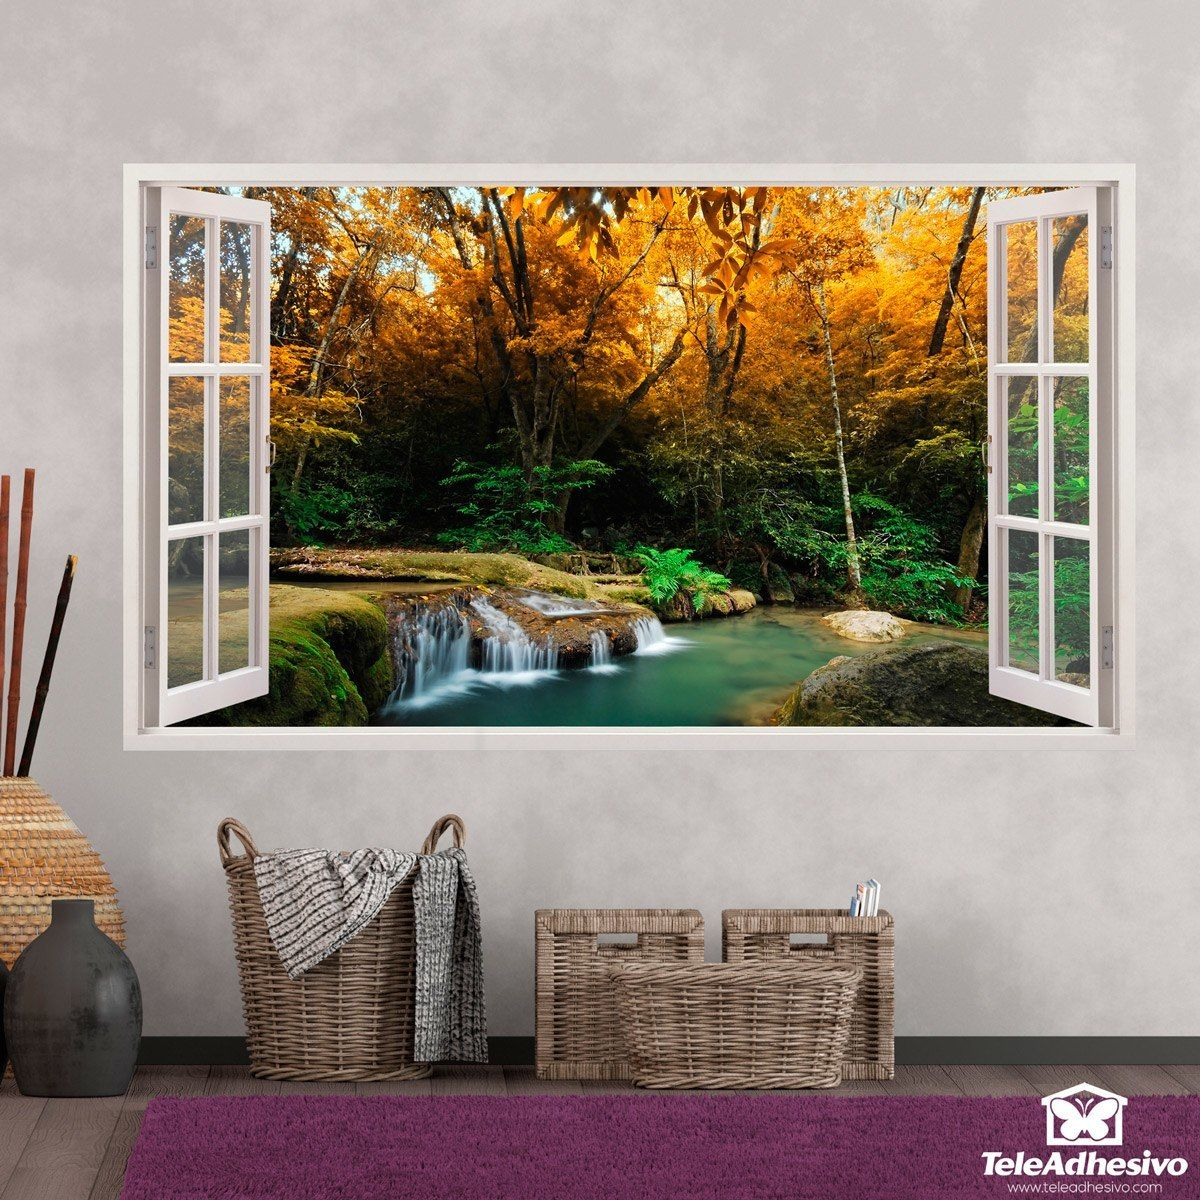 Compra adhesivos para pared con forma de ventana vinilos for Vinilos decorativos pared 3d